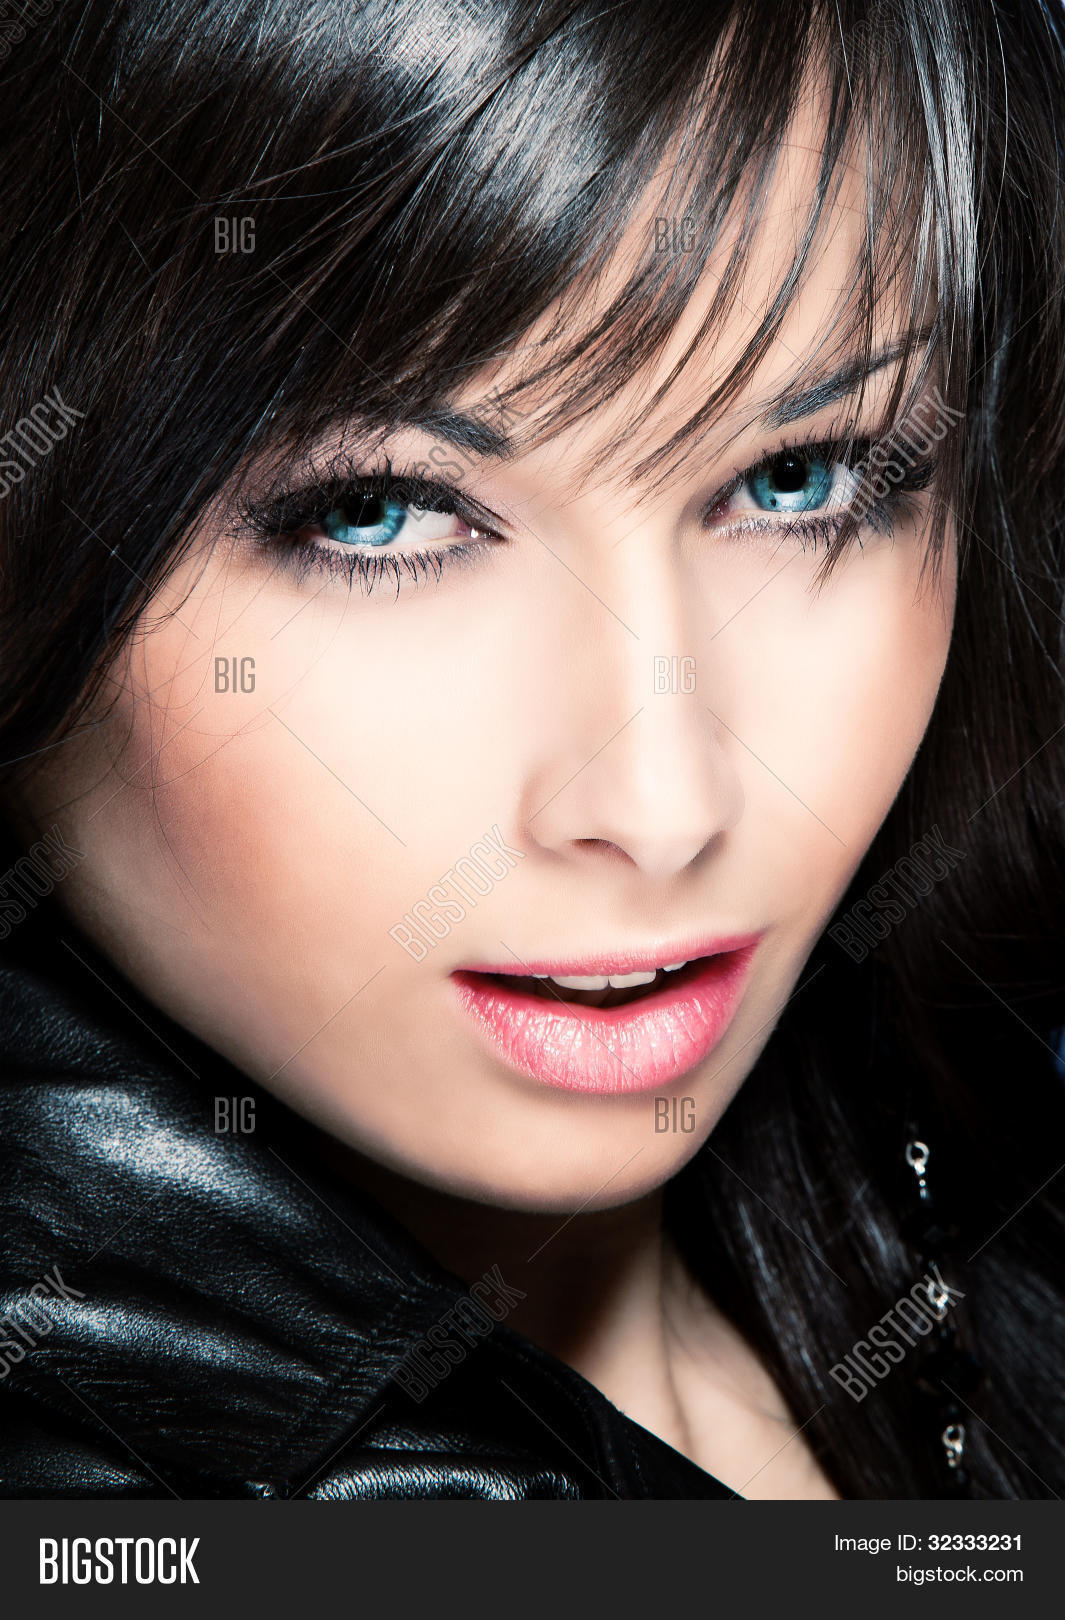 black hair blue eyes woman